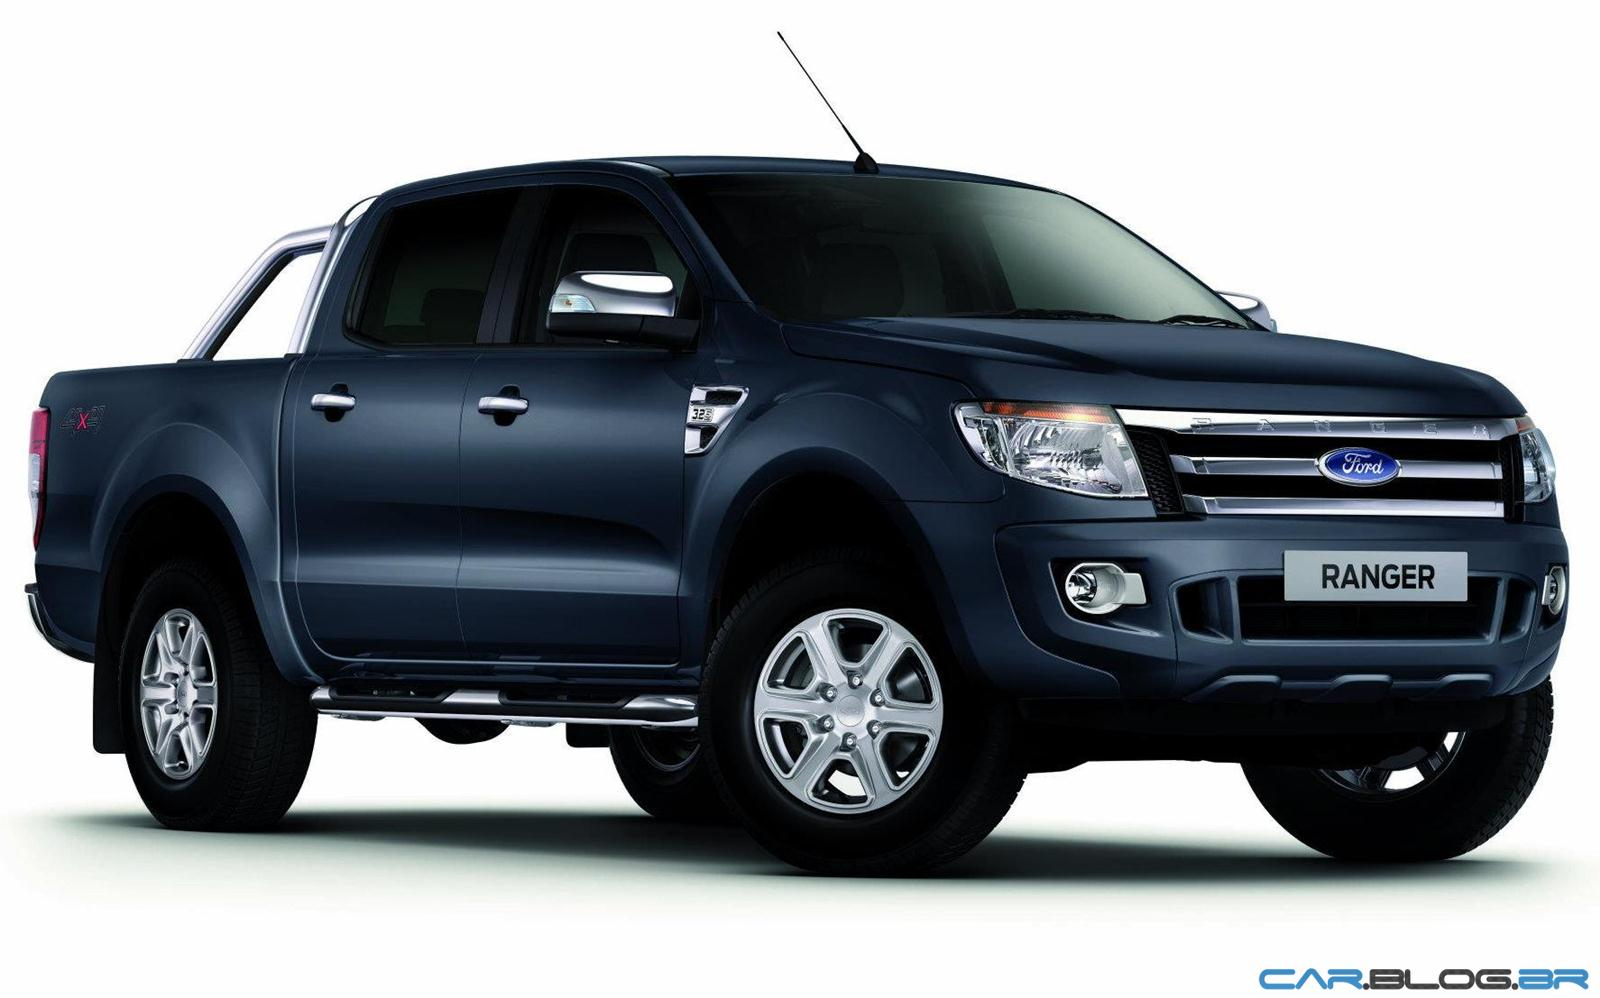 nova ford ranger xlt limited 3 2 diesel estar venda. Black Bedroom Furniture Sets. Home Design Ideas